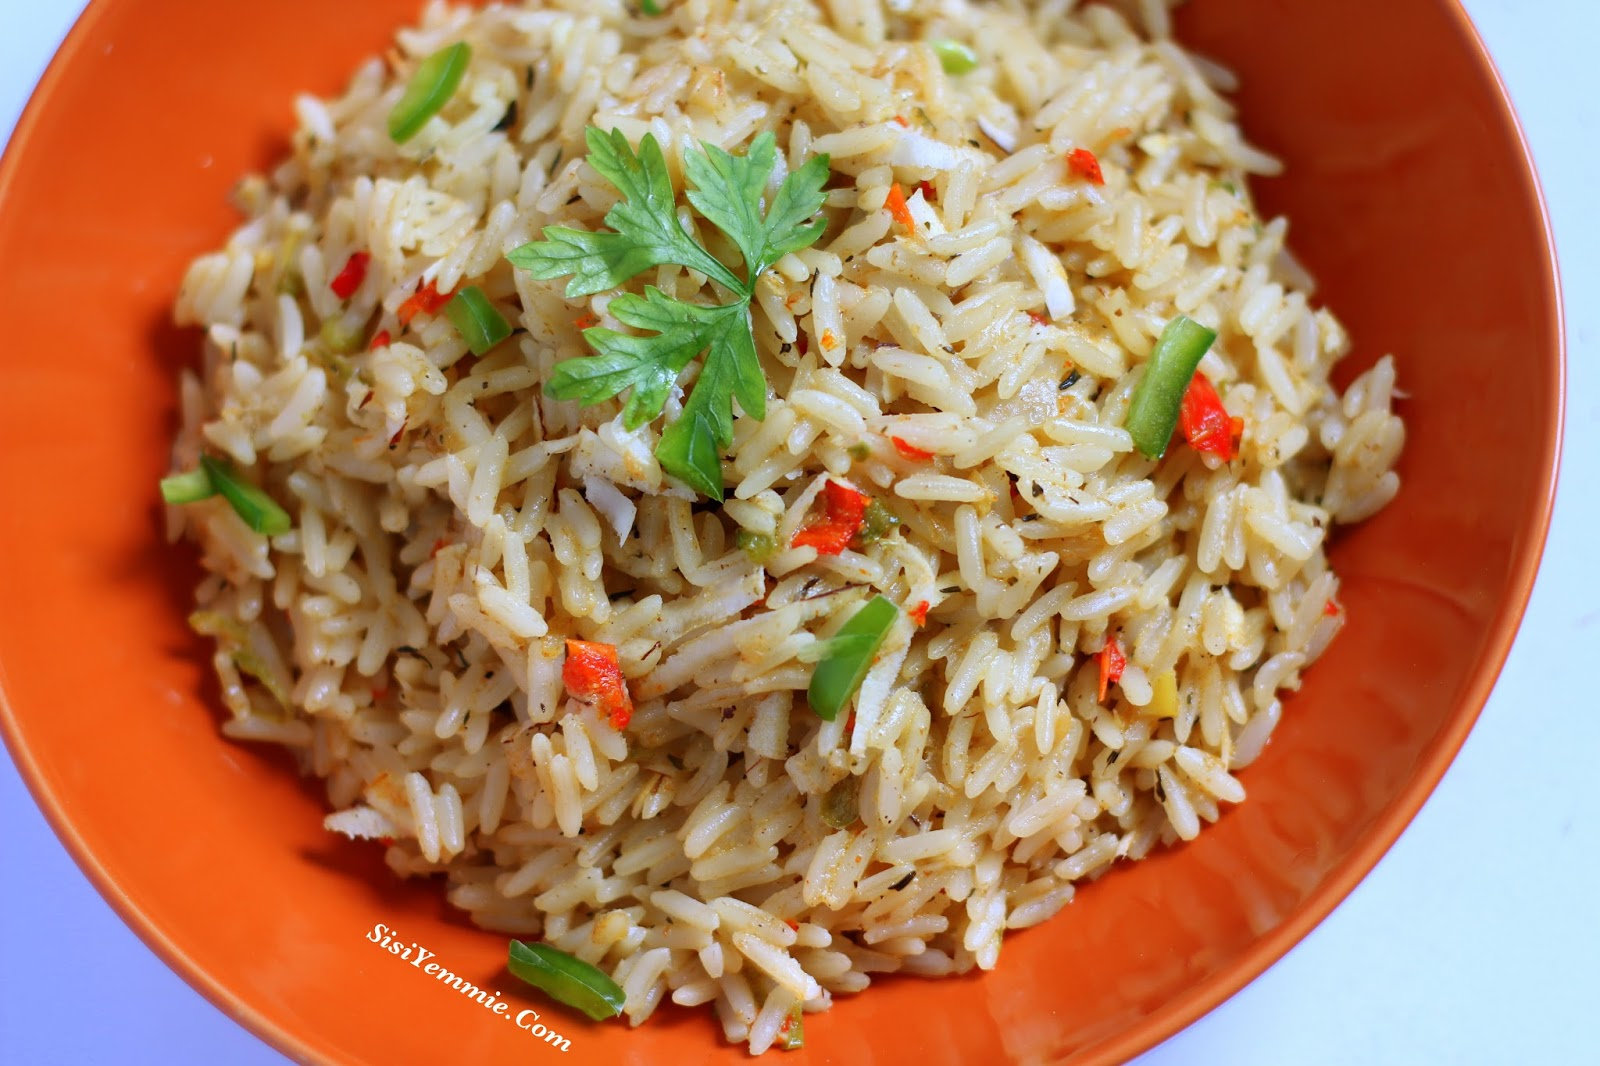 Nigerian coconut rice recipe sisiyemmie nigerian food lifestyle nigerian coconut rice recipe forumfinder Choice Image